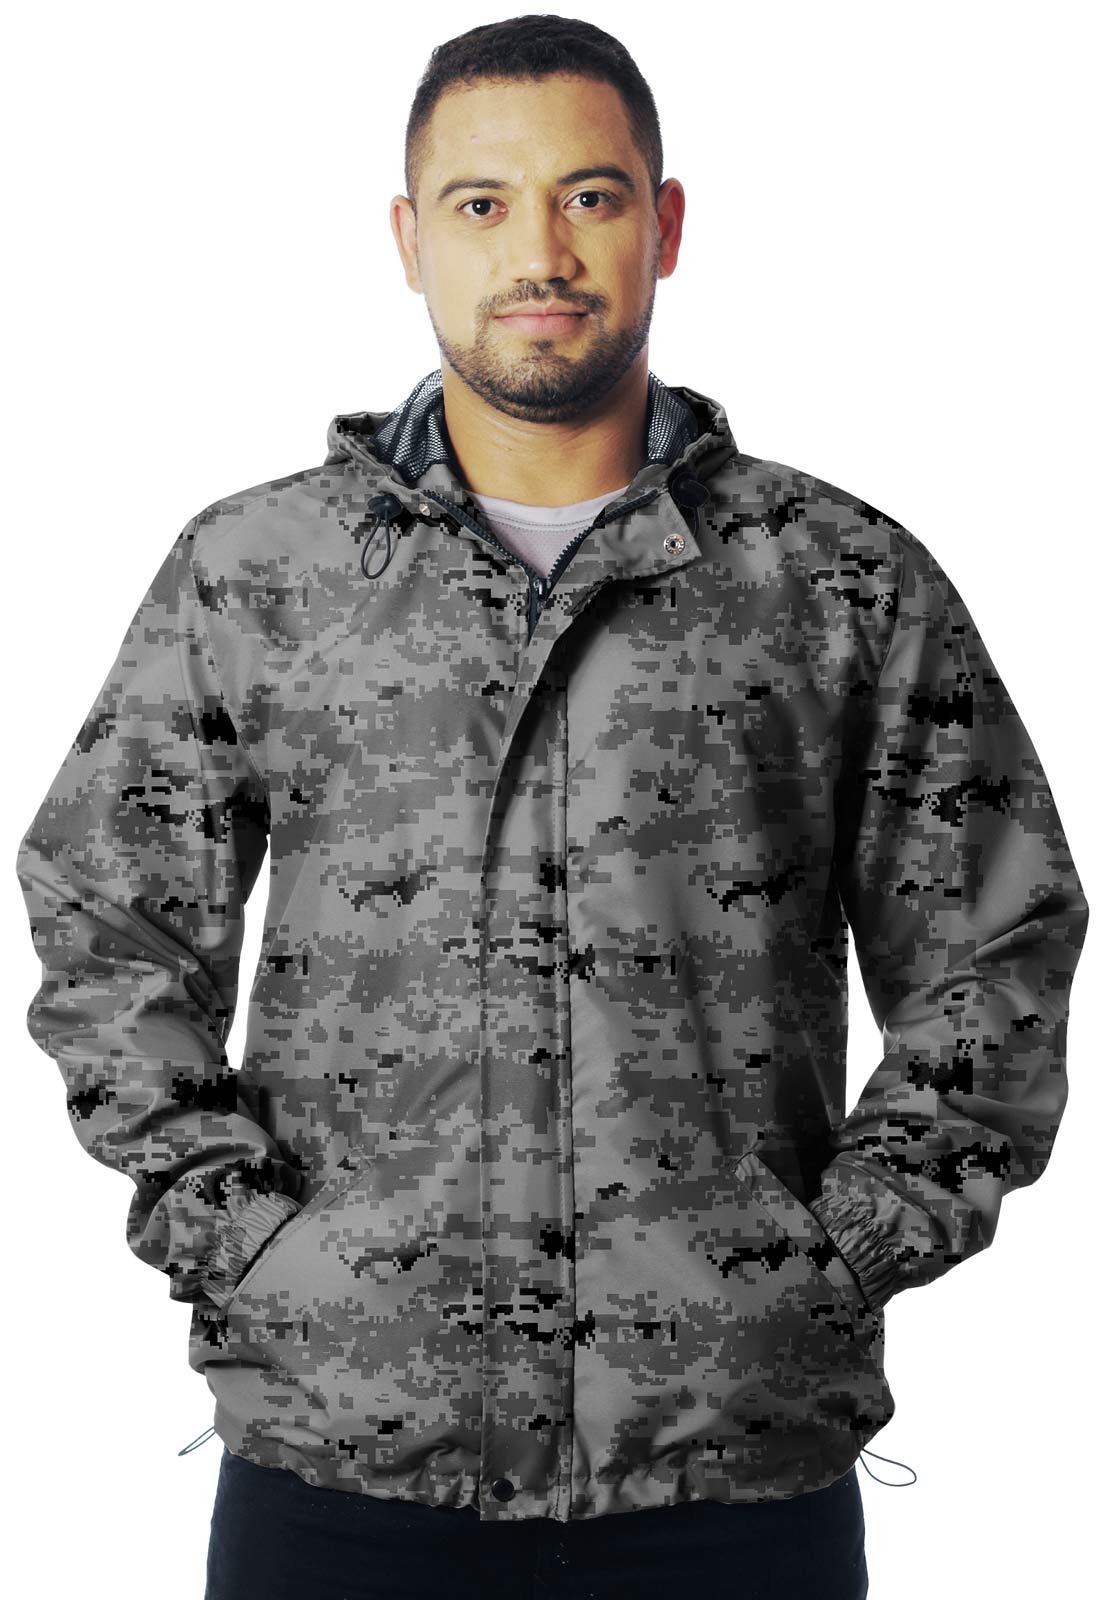 JAQUETA CORTA VENTO CAMUFLADA DIGITAL URBANO MASCULINA  - REAL HUNTER OUTDOORS